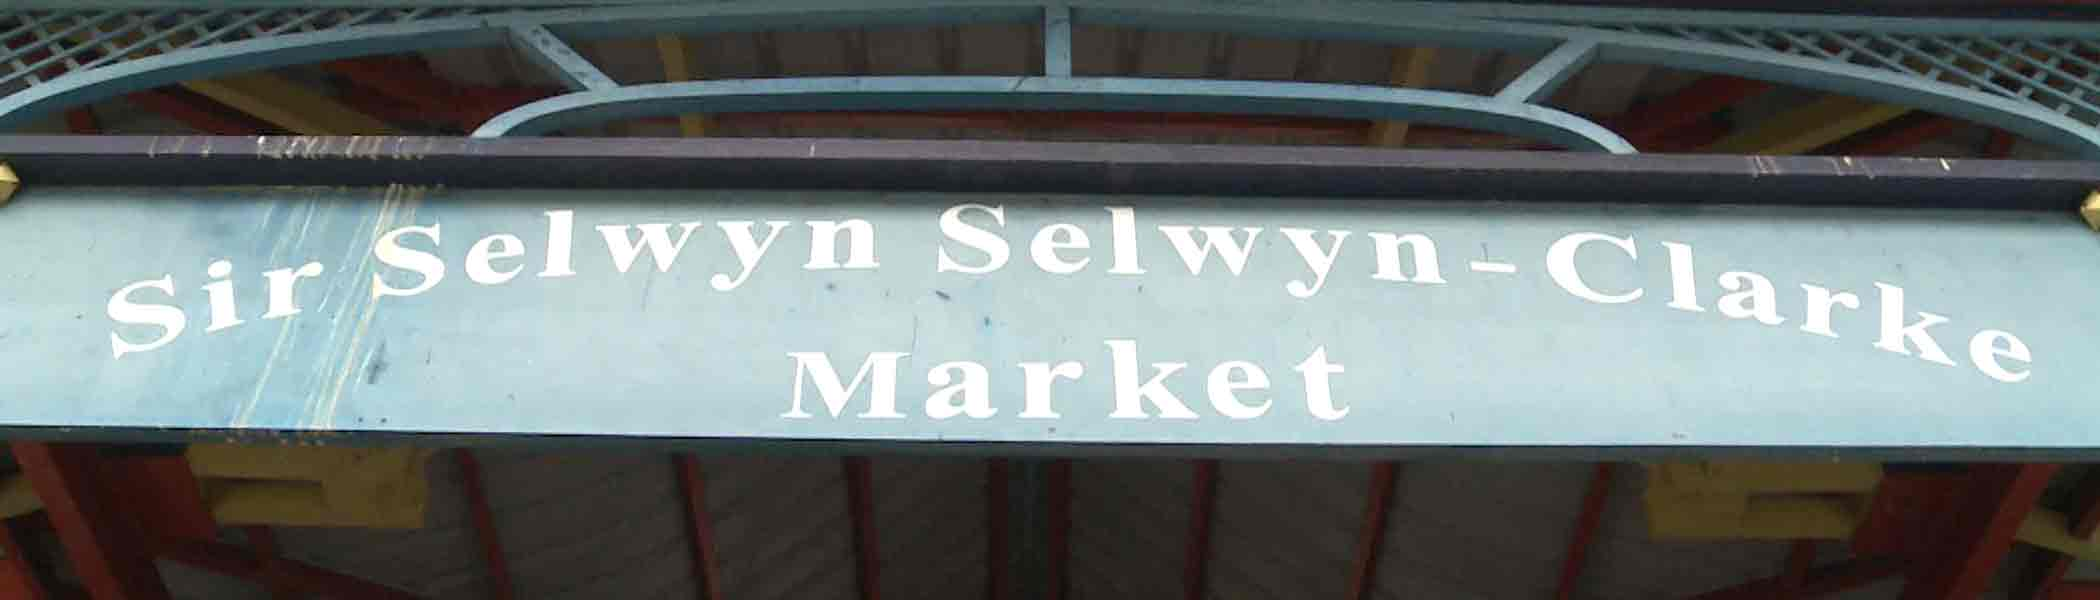 sir-selwyn-clarke-market, Places of Interest in Seychelles Islands